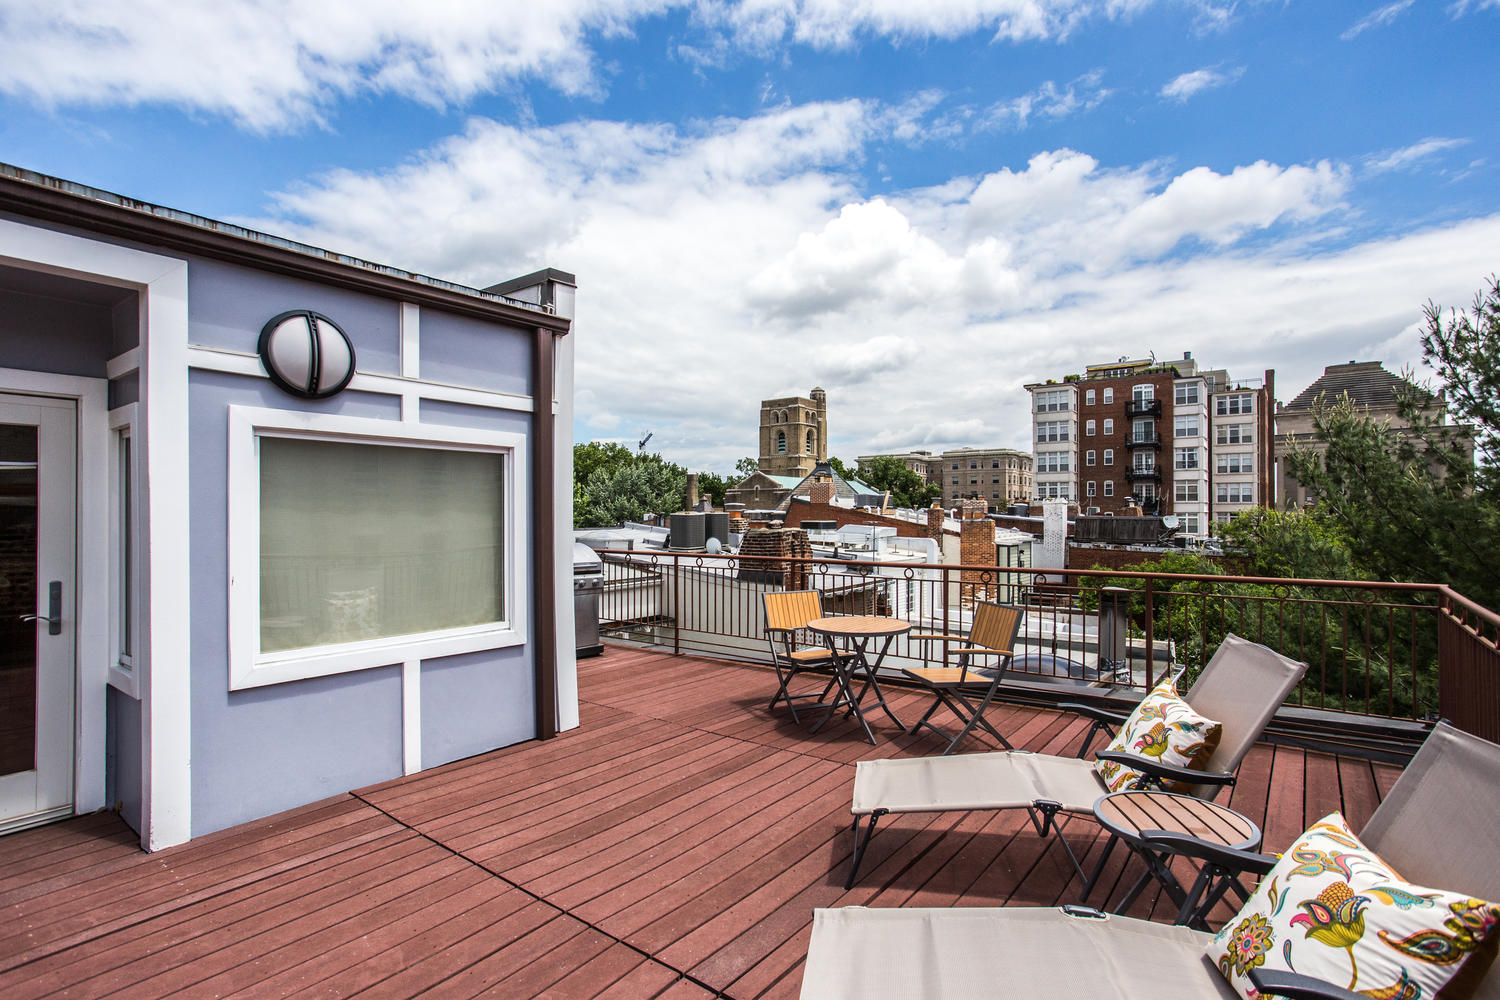 1632 16th St NW Unit 32-large-053-30-Rooftop Deck-1500x1000-72dpi.jpg